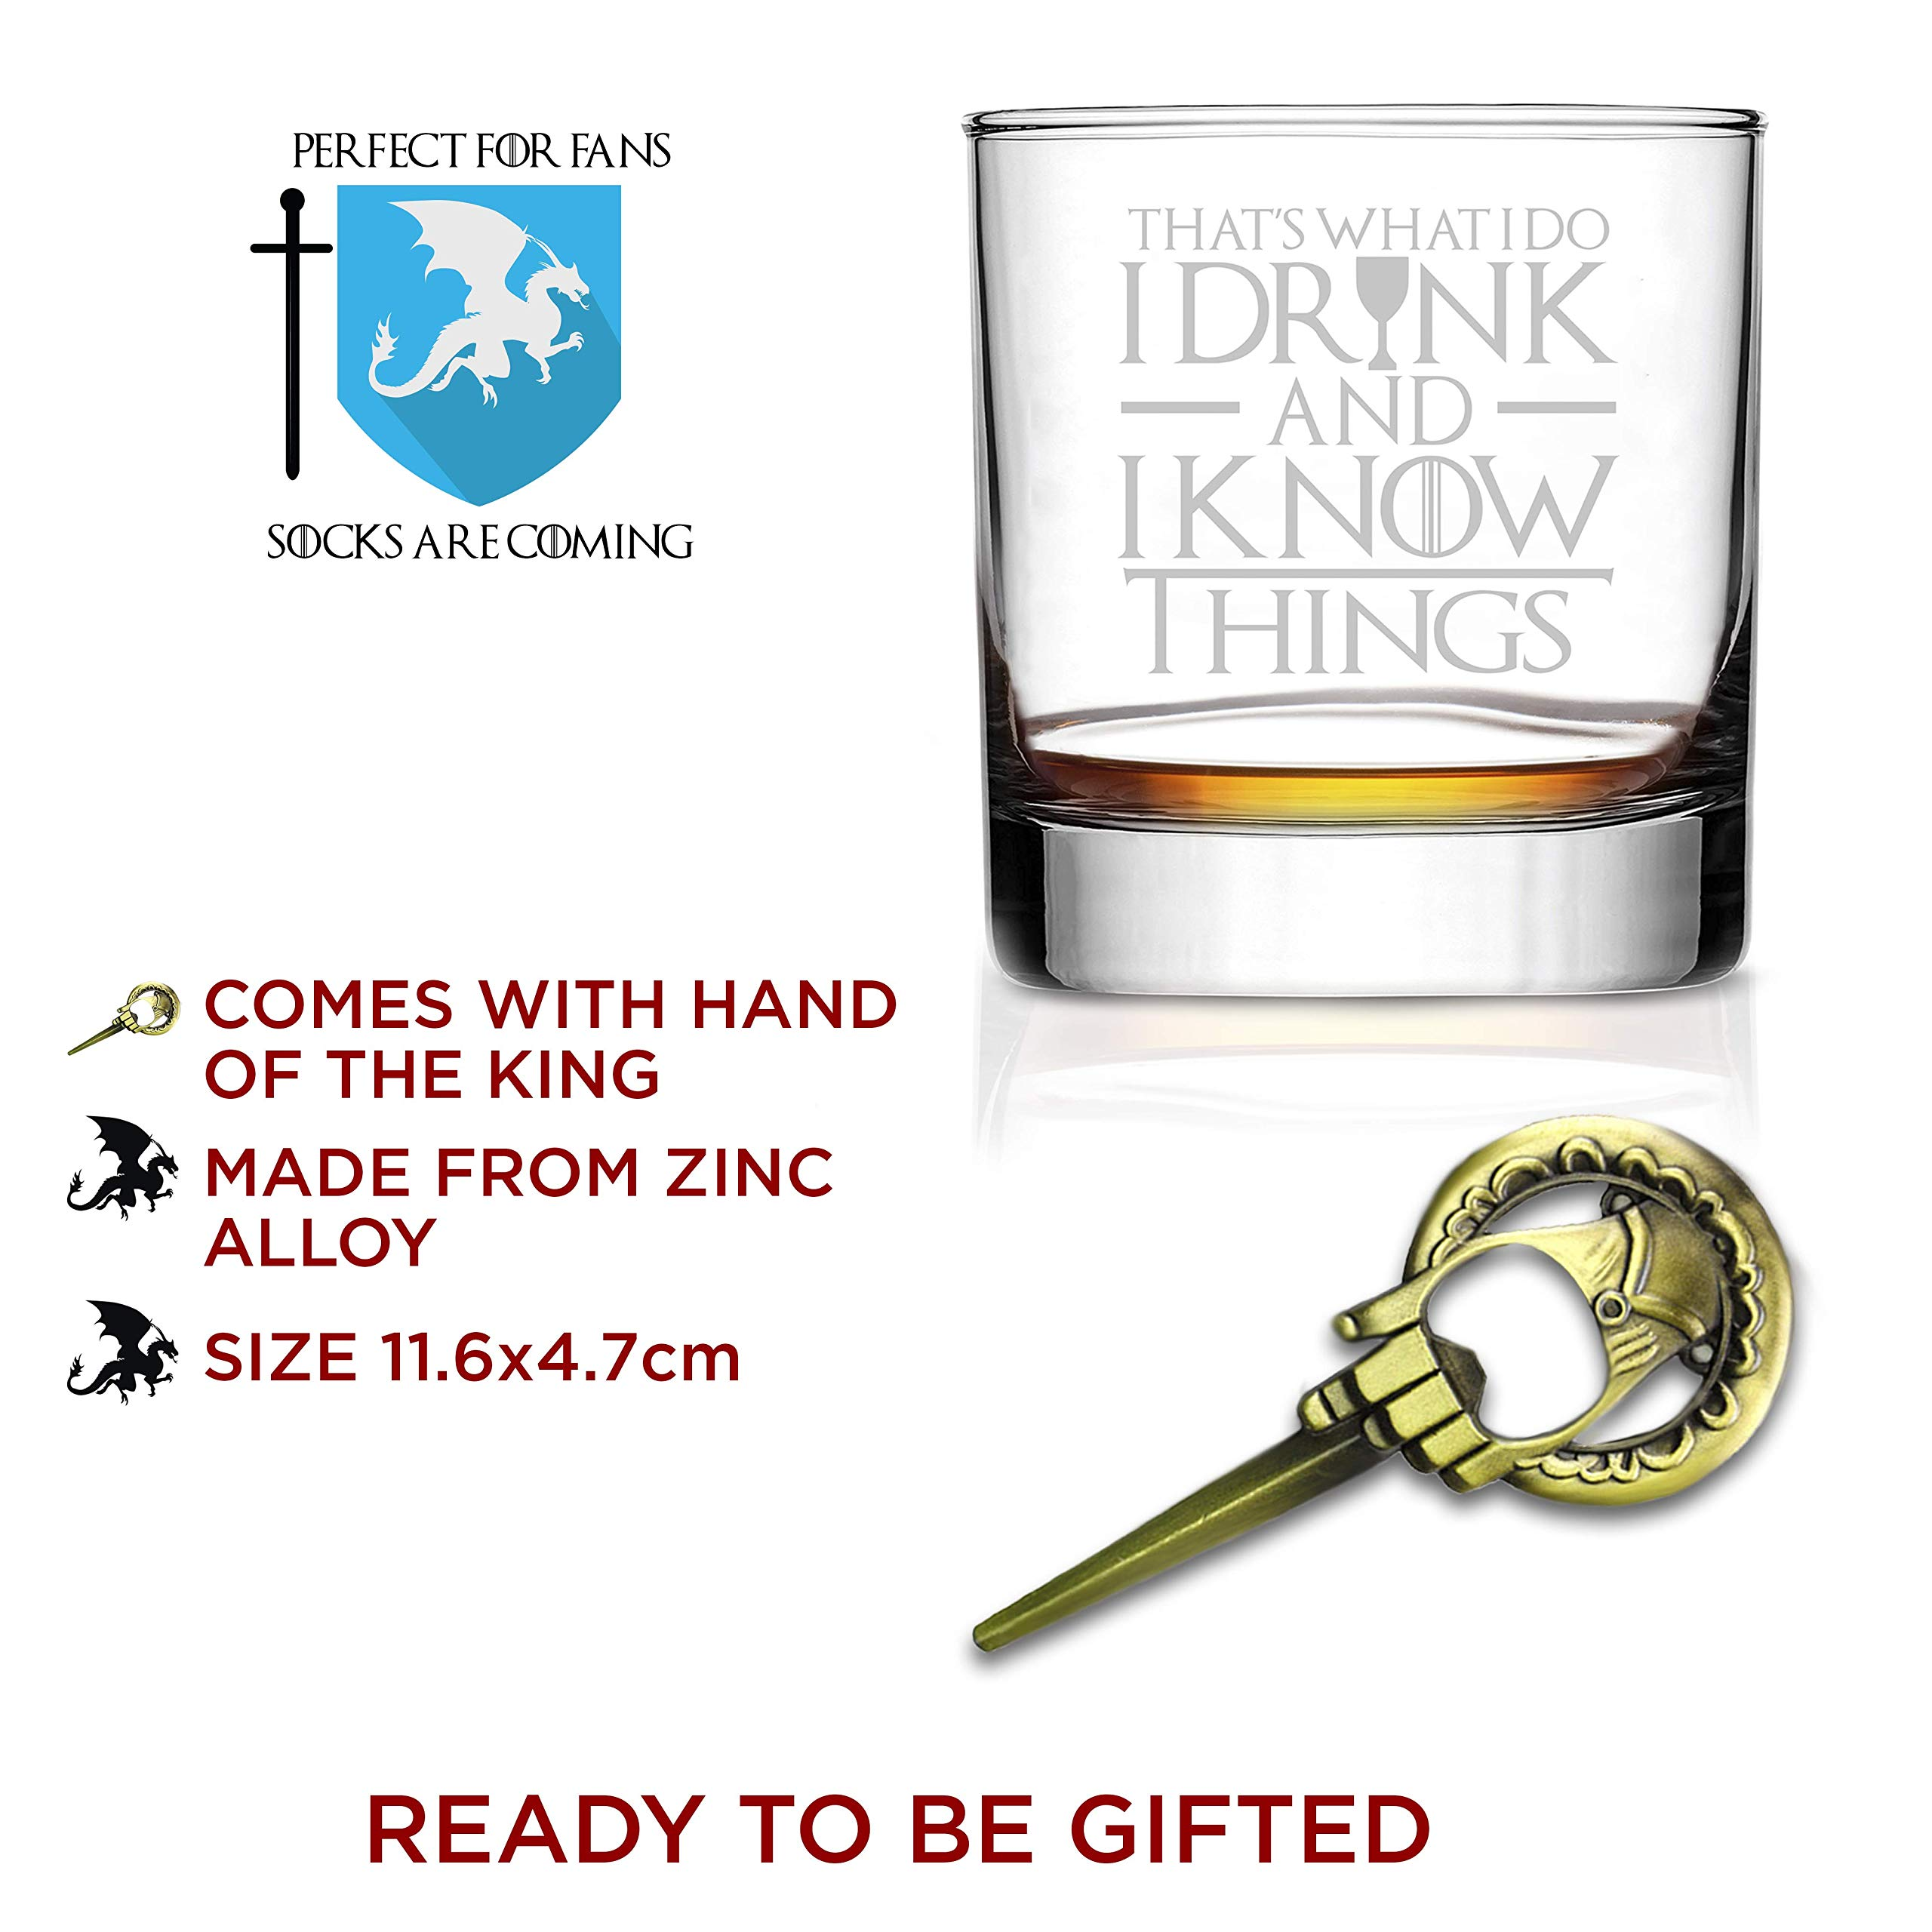 I Drink And I Know Things Highball Whiskey Glasses - Set of 2 - by FOLE (Image #4)